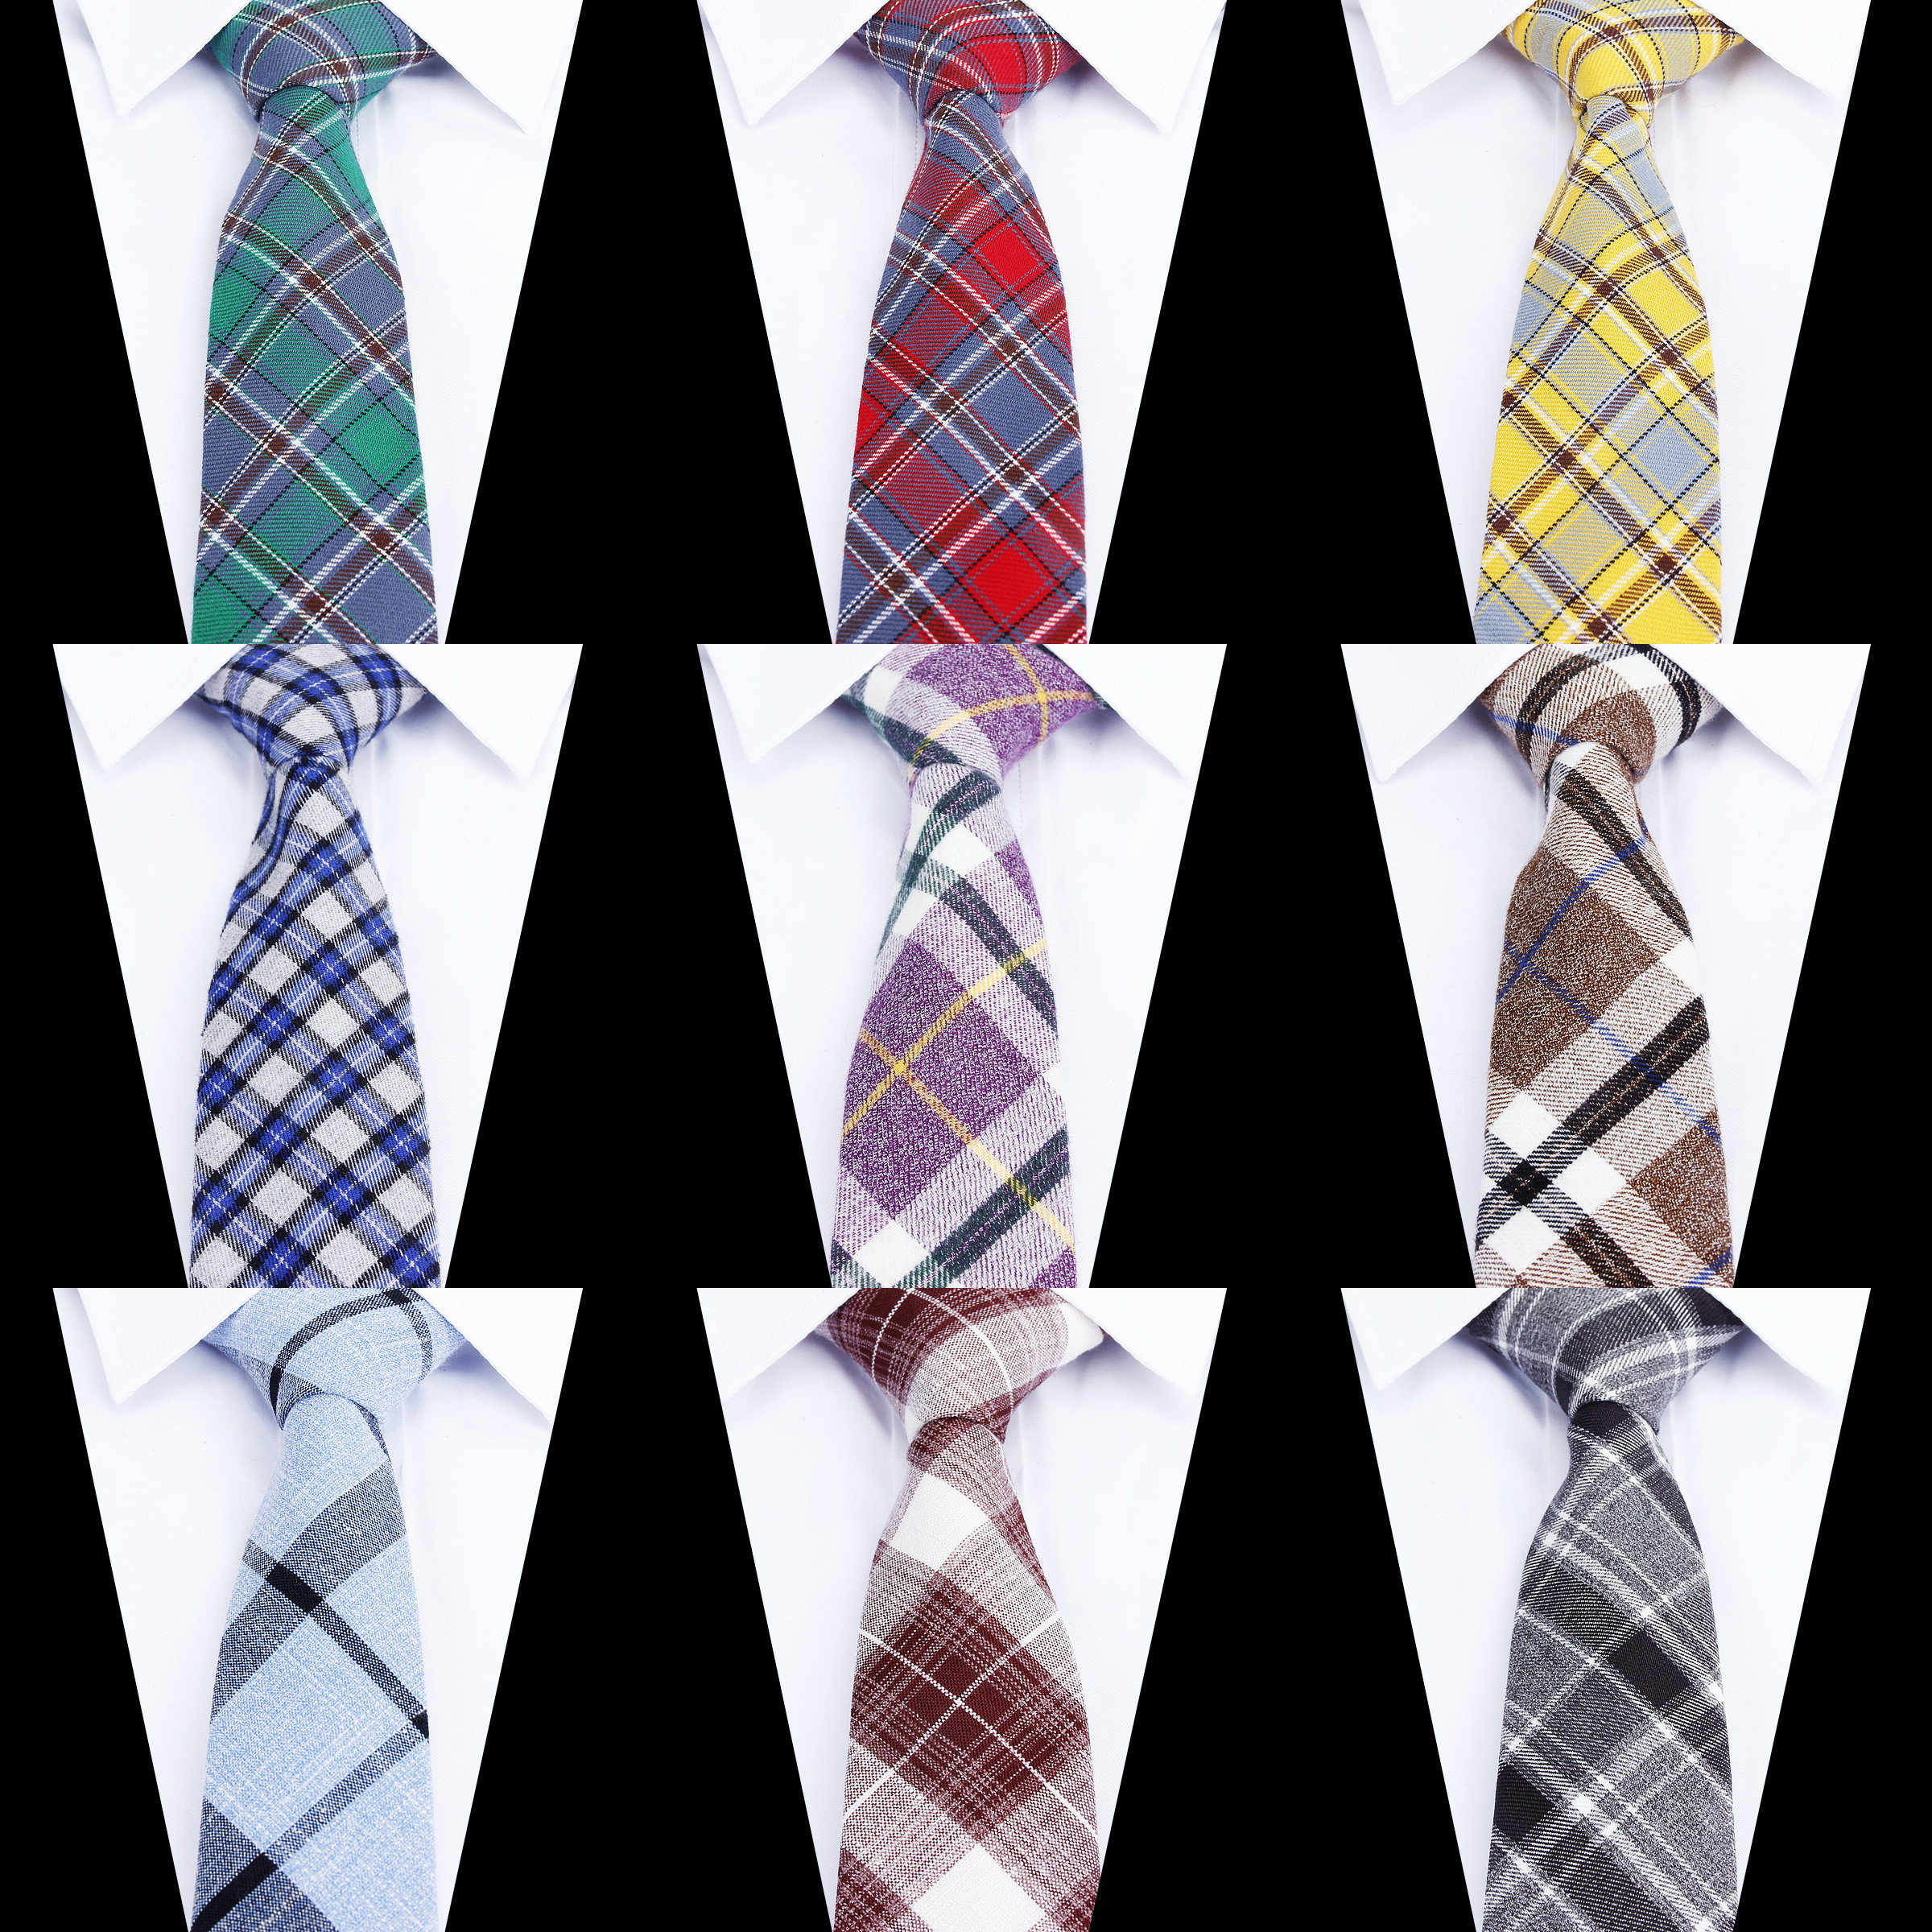 Women Tie Classic Men's Plaid Necktie Casual Sweet Rainbow Suit Bowknots Ties Male Cotton Skinny Slim Ties Colourful Neckties